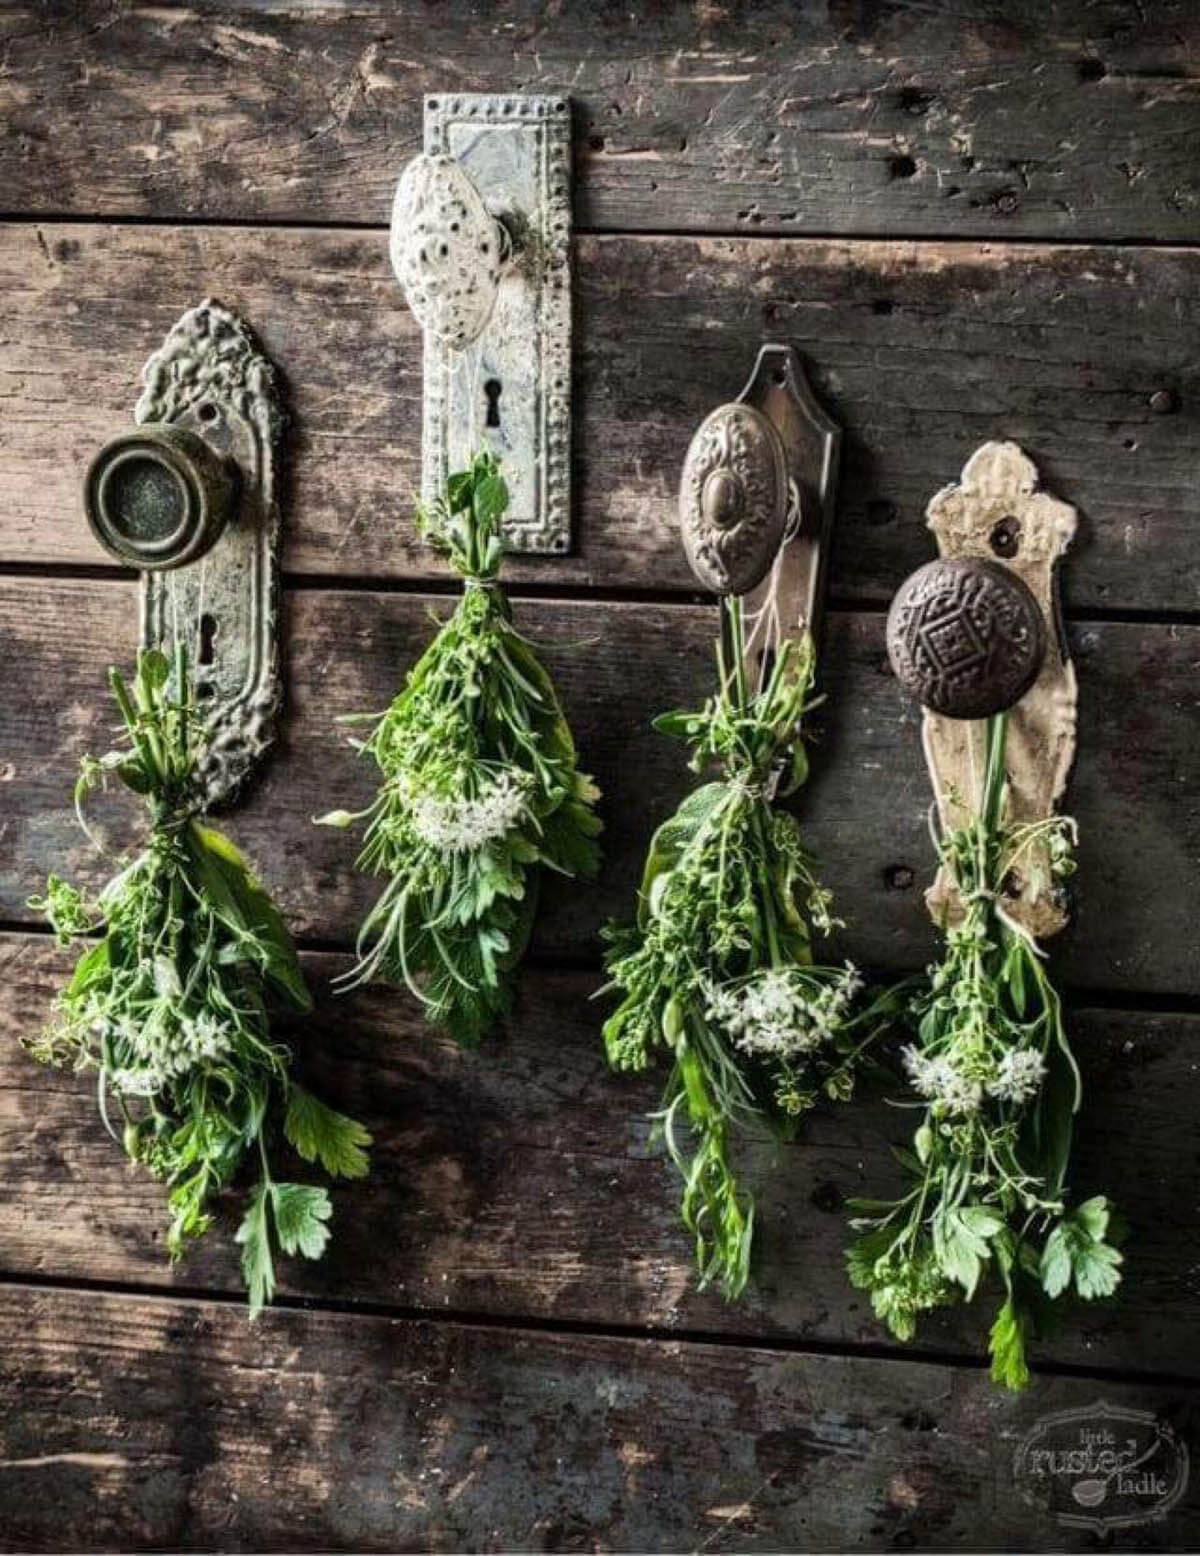 antique doorknob flower and herb drying display - Garden Ideas Vintage